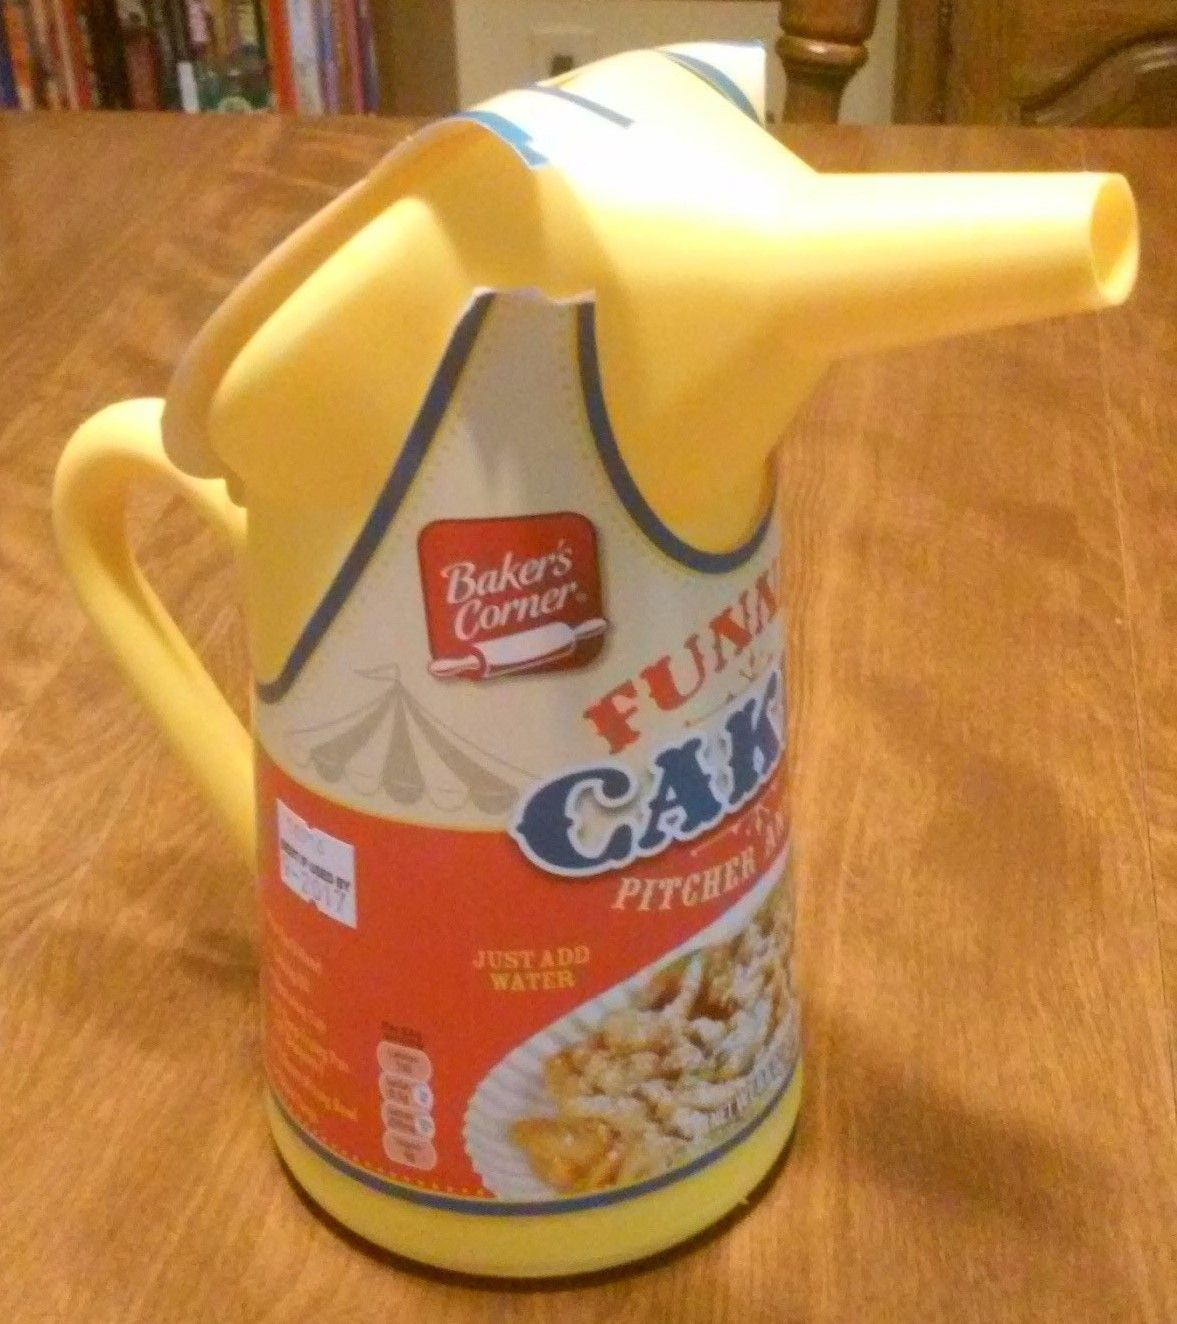 Bakers corner funnel cakes pitcher and mix aldi